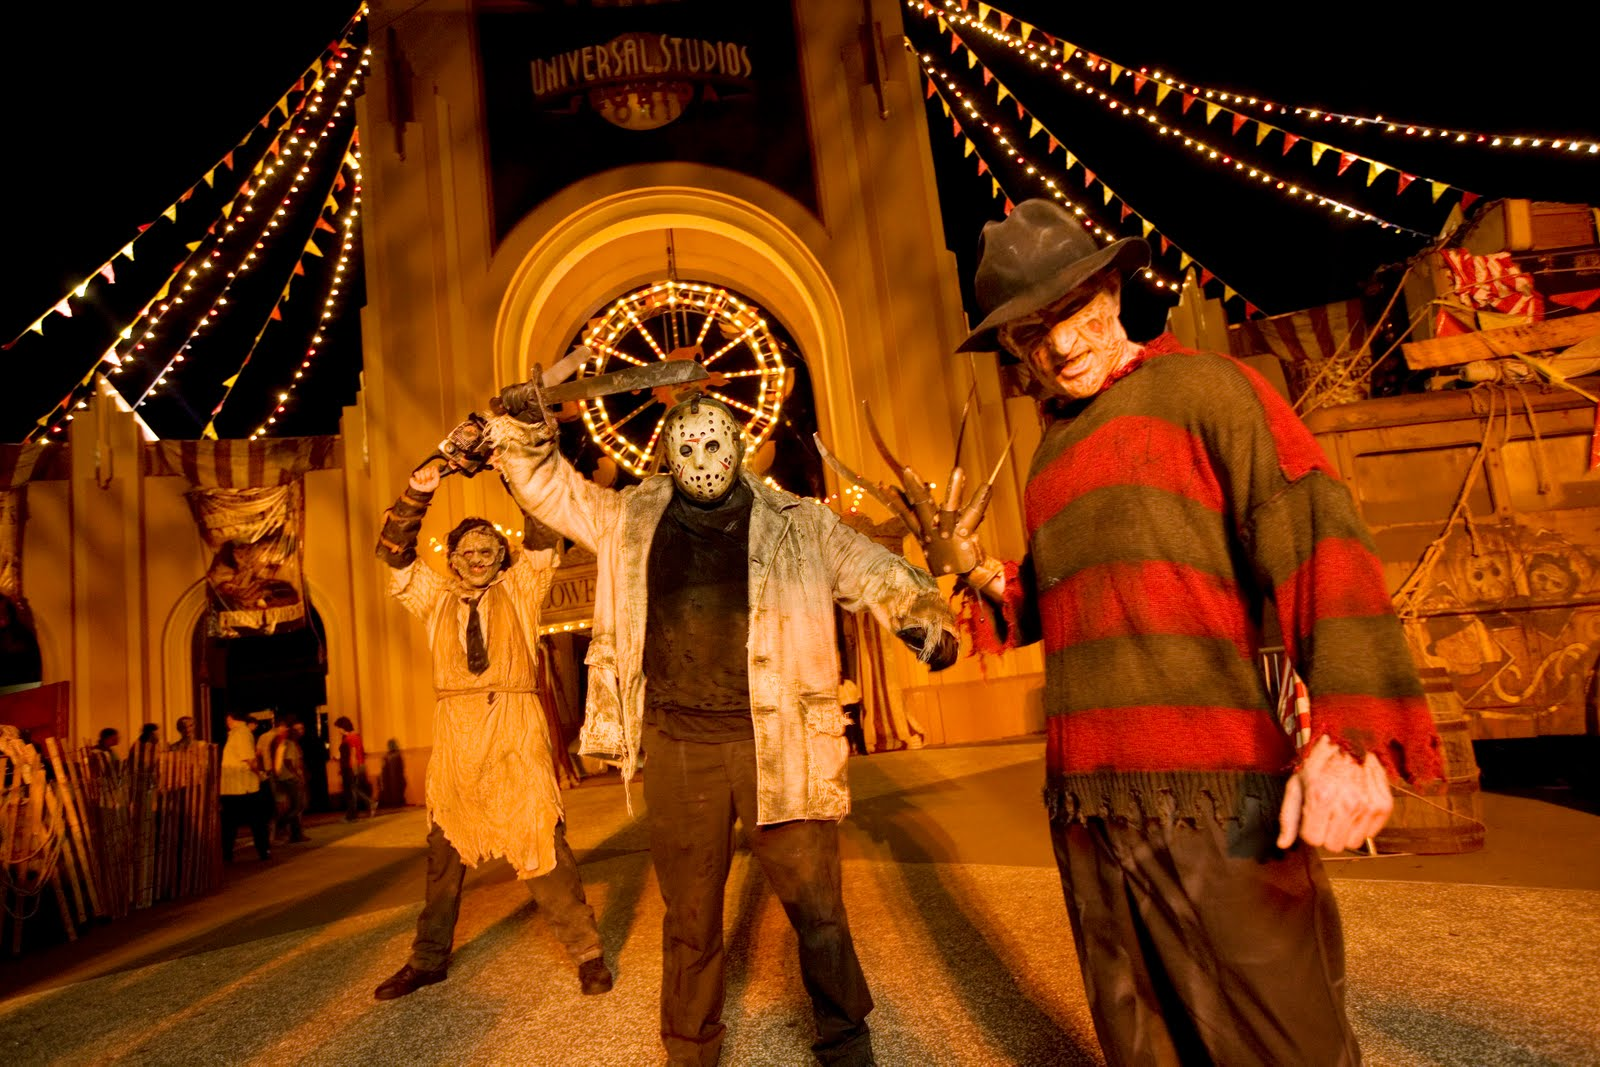 universal orlando announces halloween horror nights 2010 dates and ticket prices - How Much Are The Halloween Horror Night Tickets